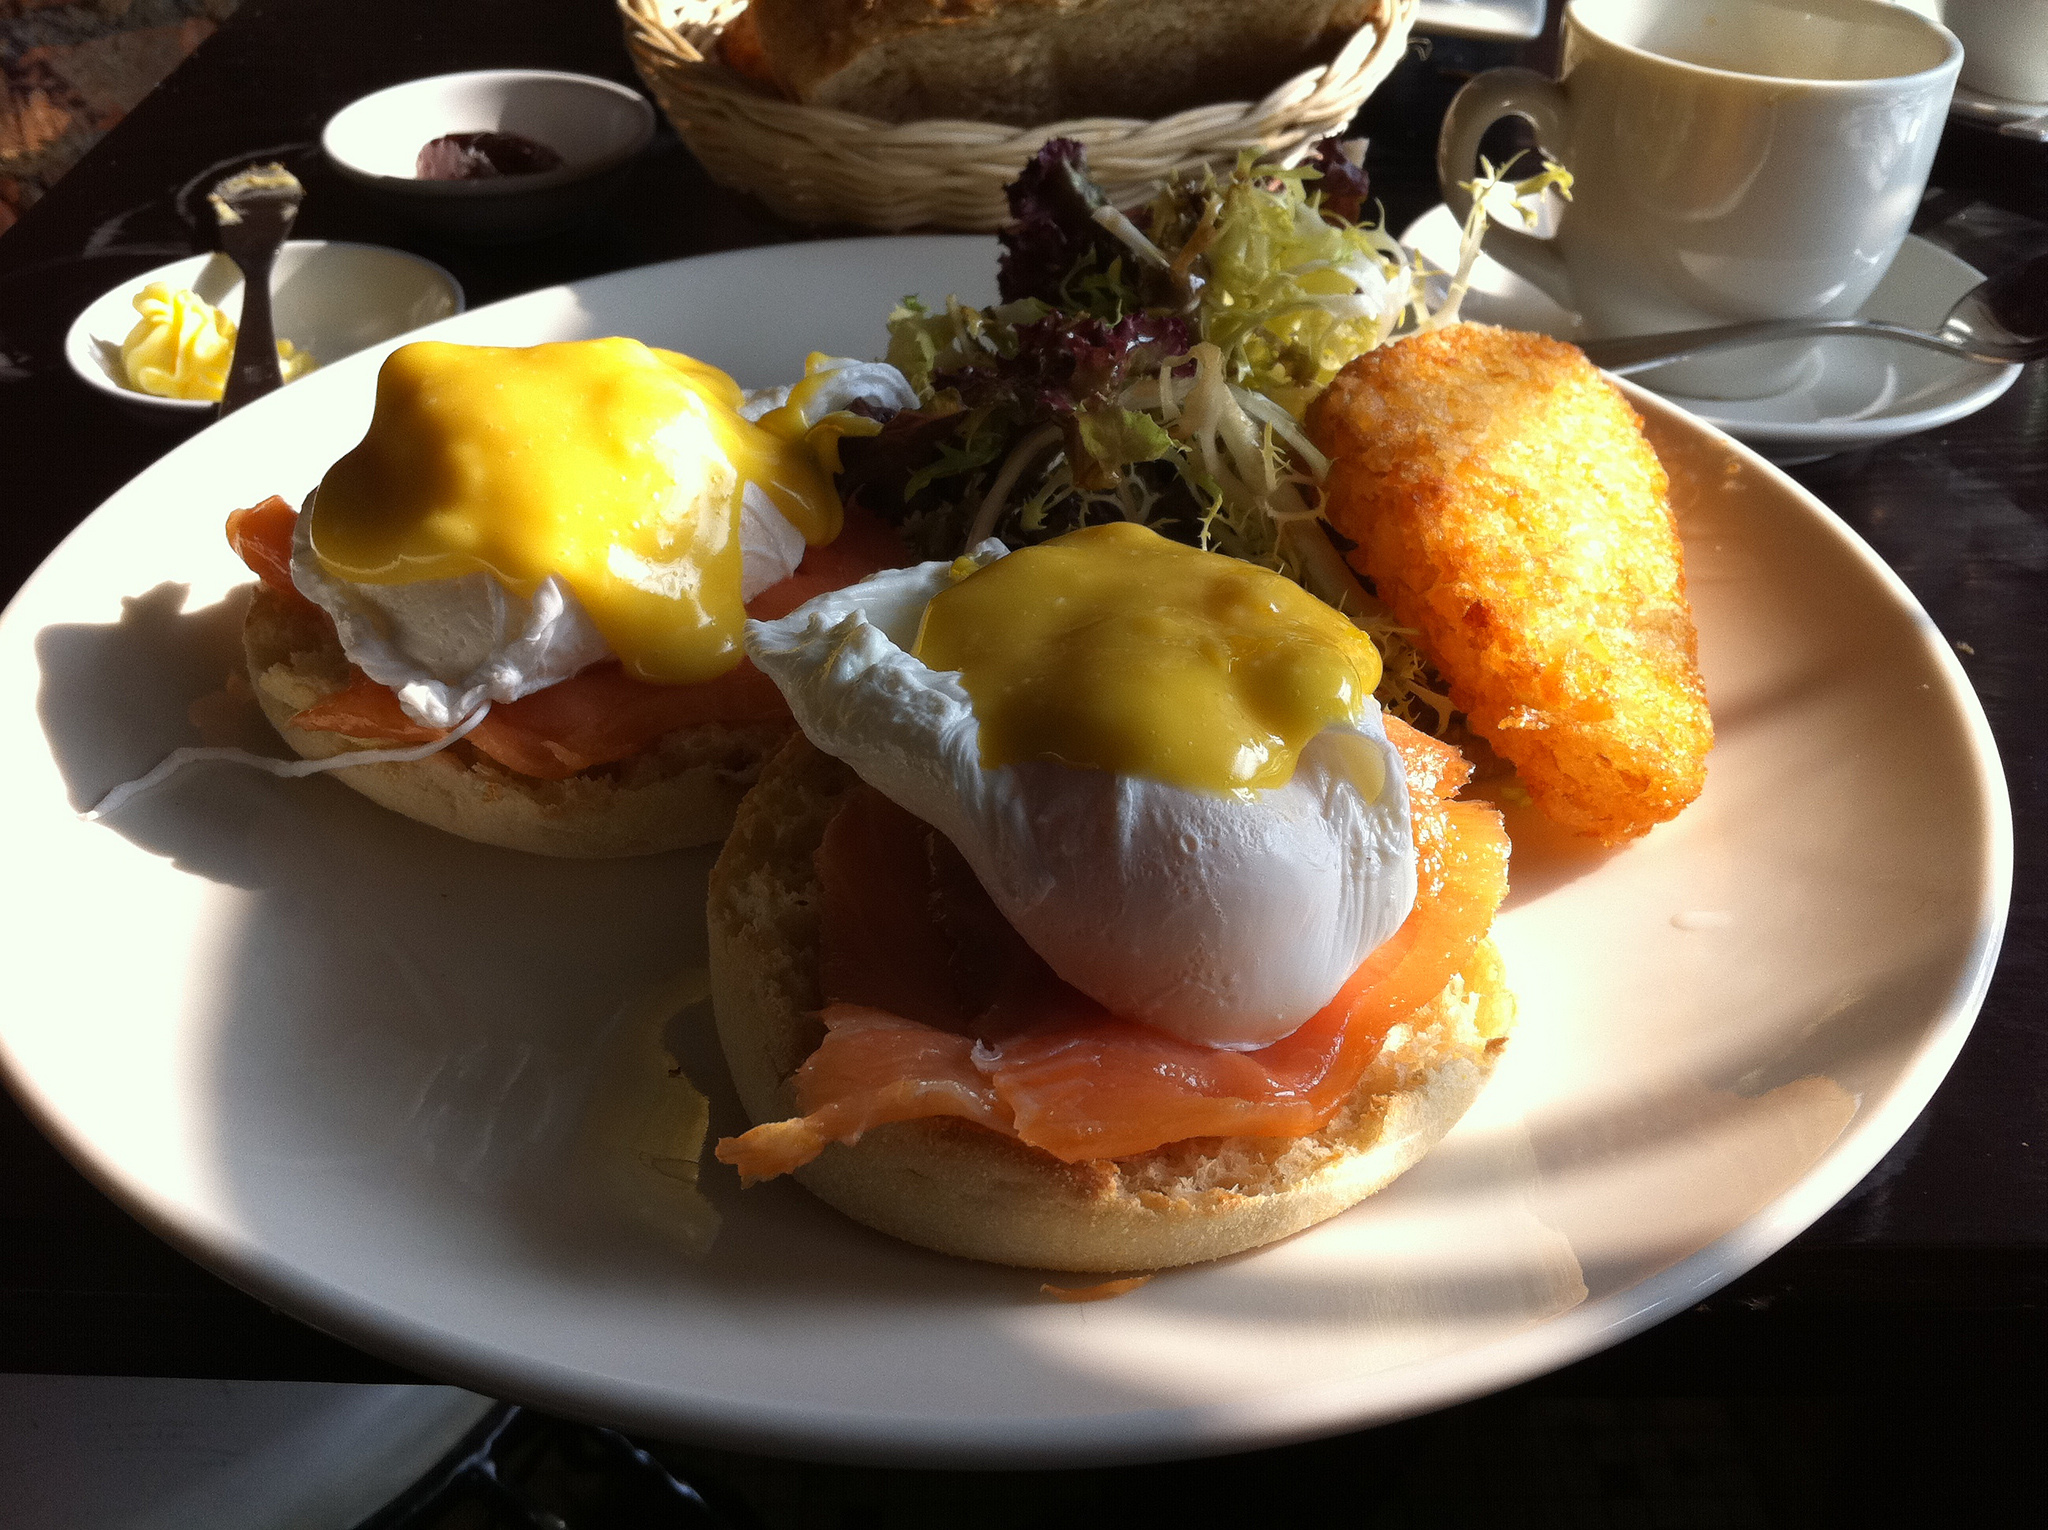 Salmon eggs benedict at Brunch Club & Supper in Hong Kong.